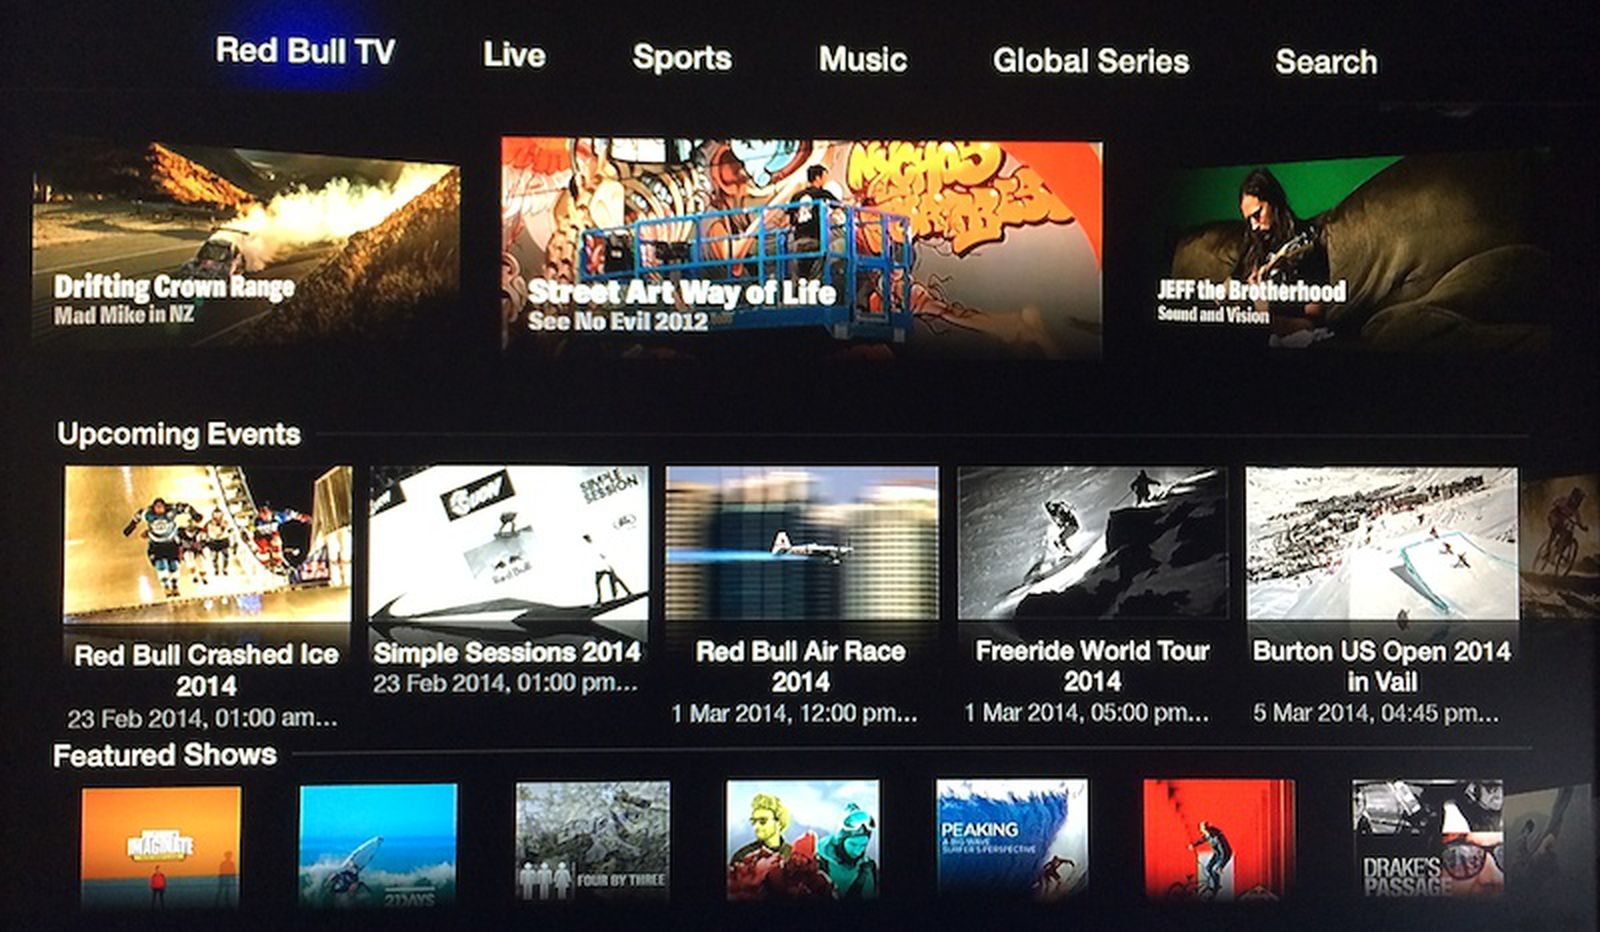 Apple Adds 'Red Bull TV' Action Sports Channel to Apple TV - MacRumors